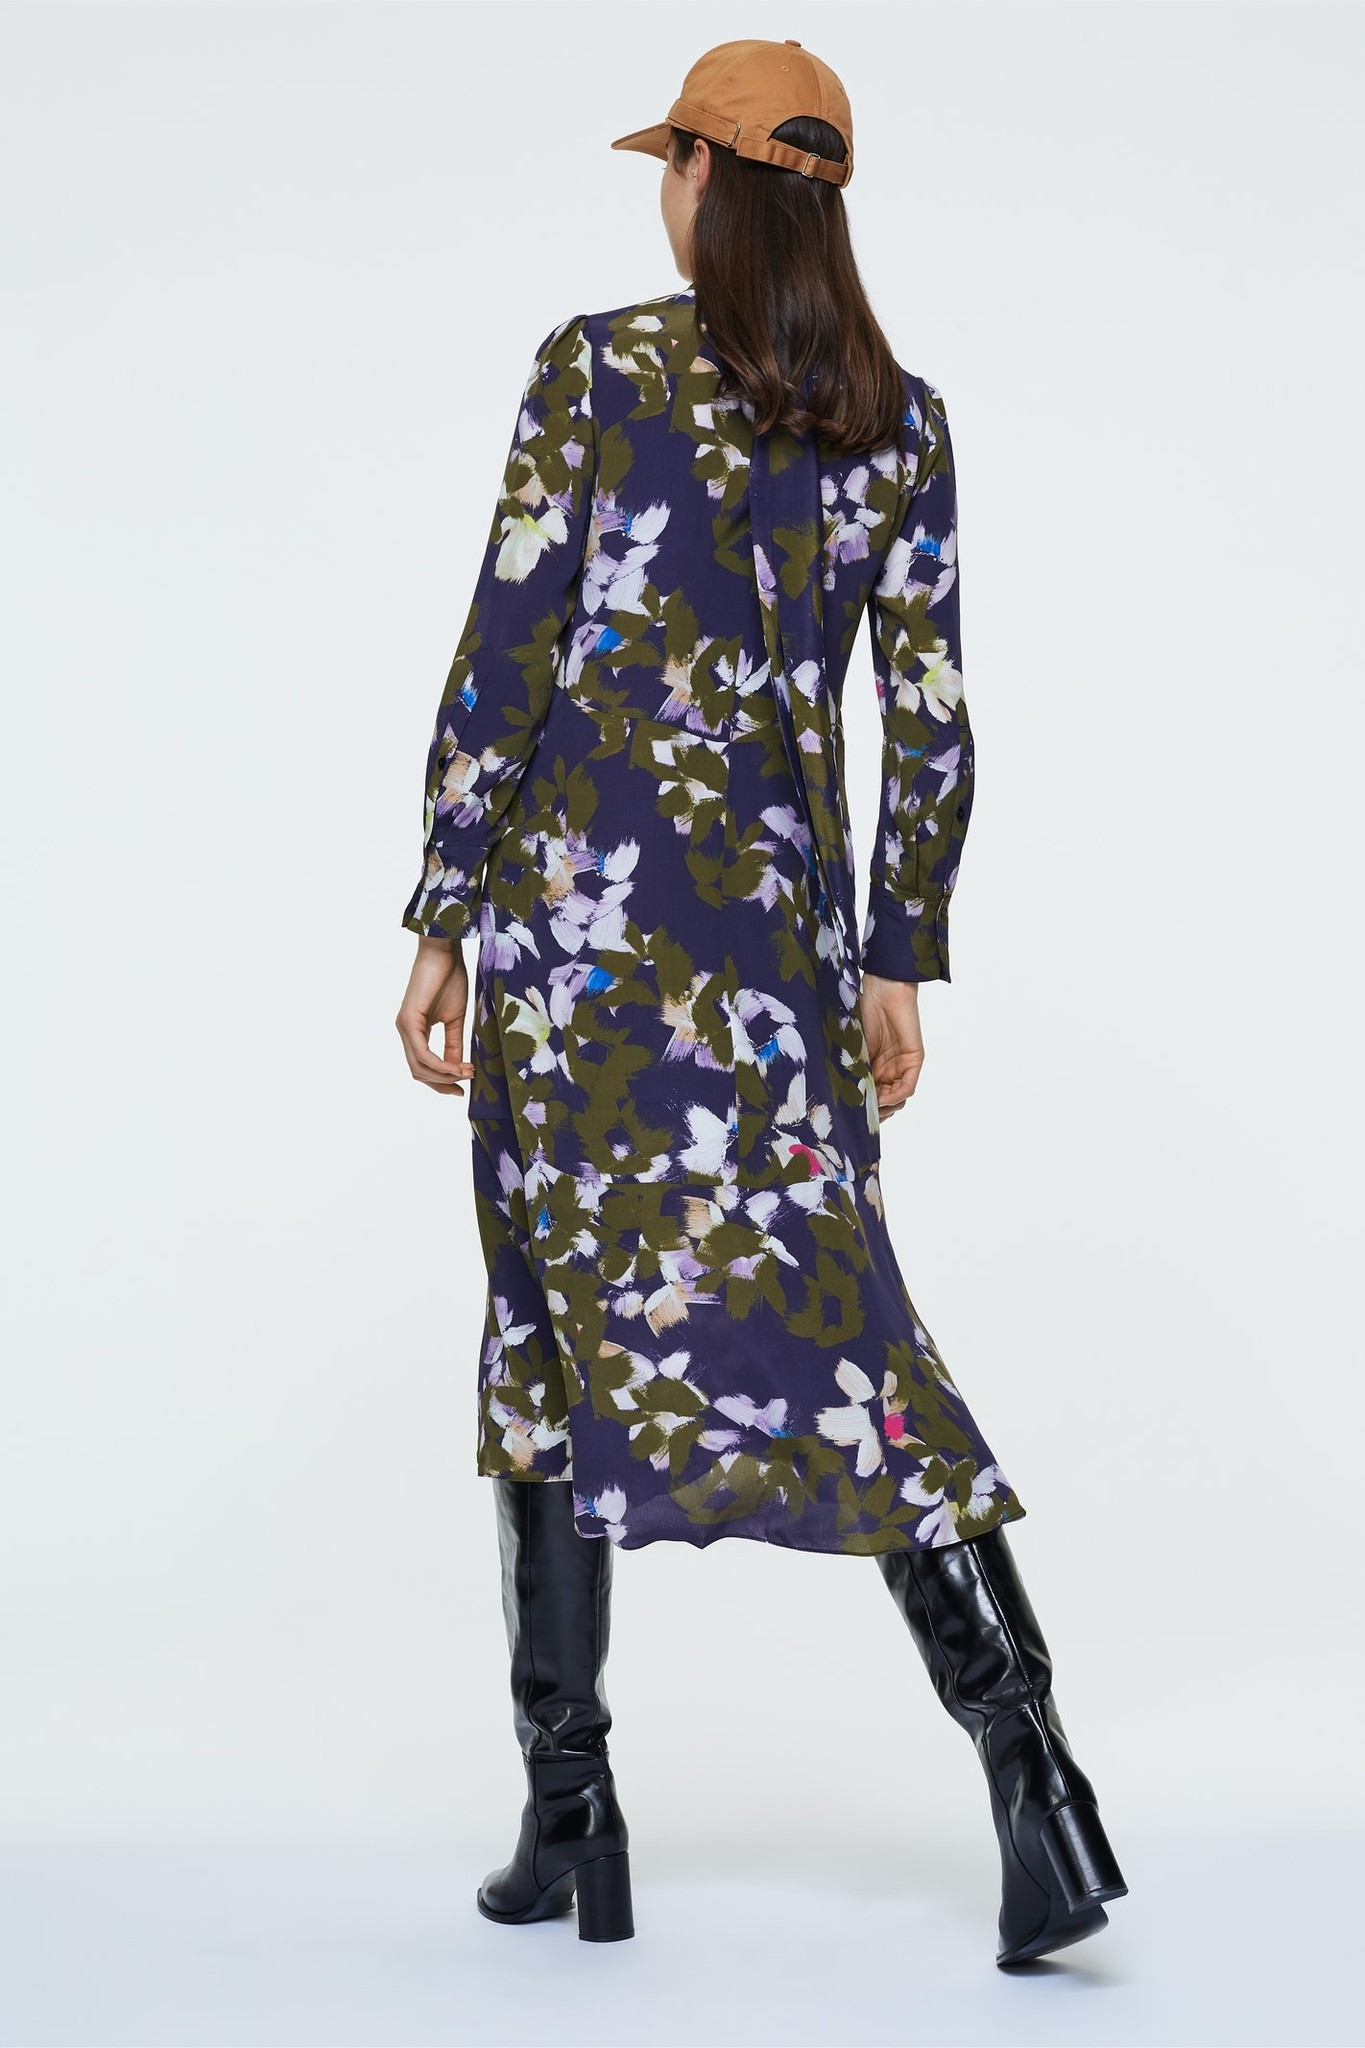 Floral graphics dress Dorothee schumacher-4